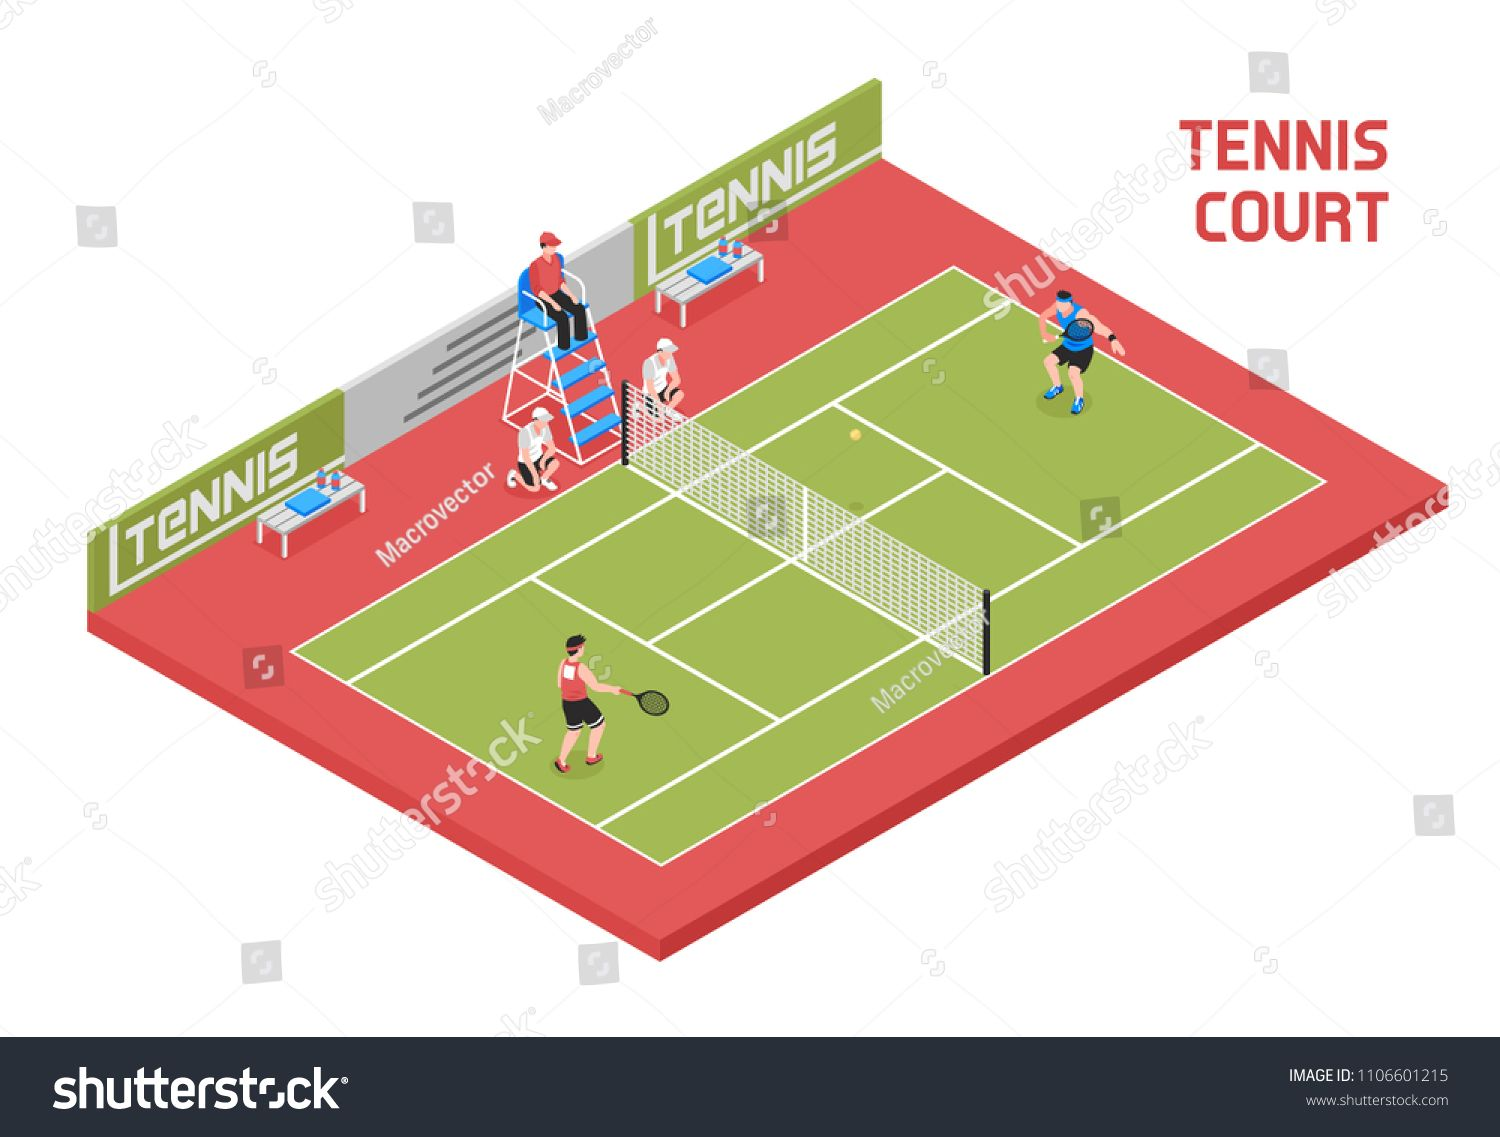 Sport Field Tennis Court Isometric Composition With 2 Players Ball Boys And Referee In Tall Chair Vector Illustration Ad S Tennis Court Soccer Field Sports